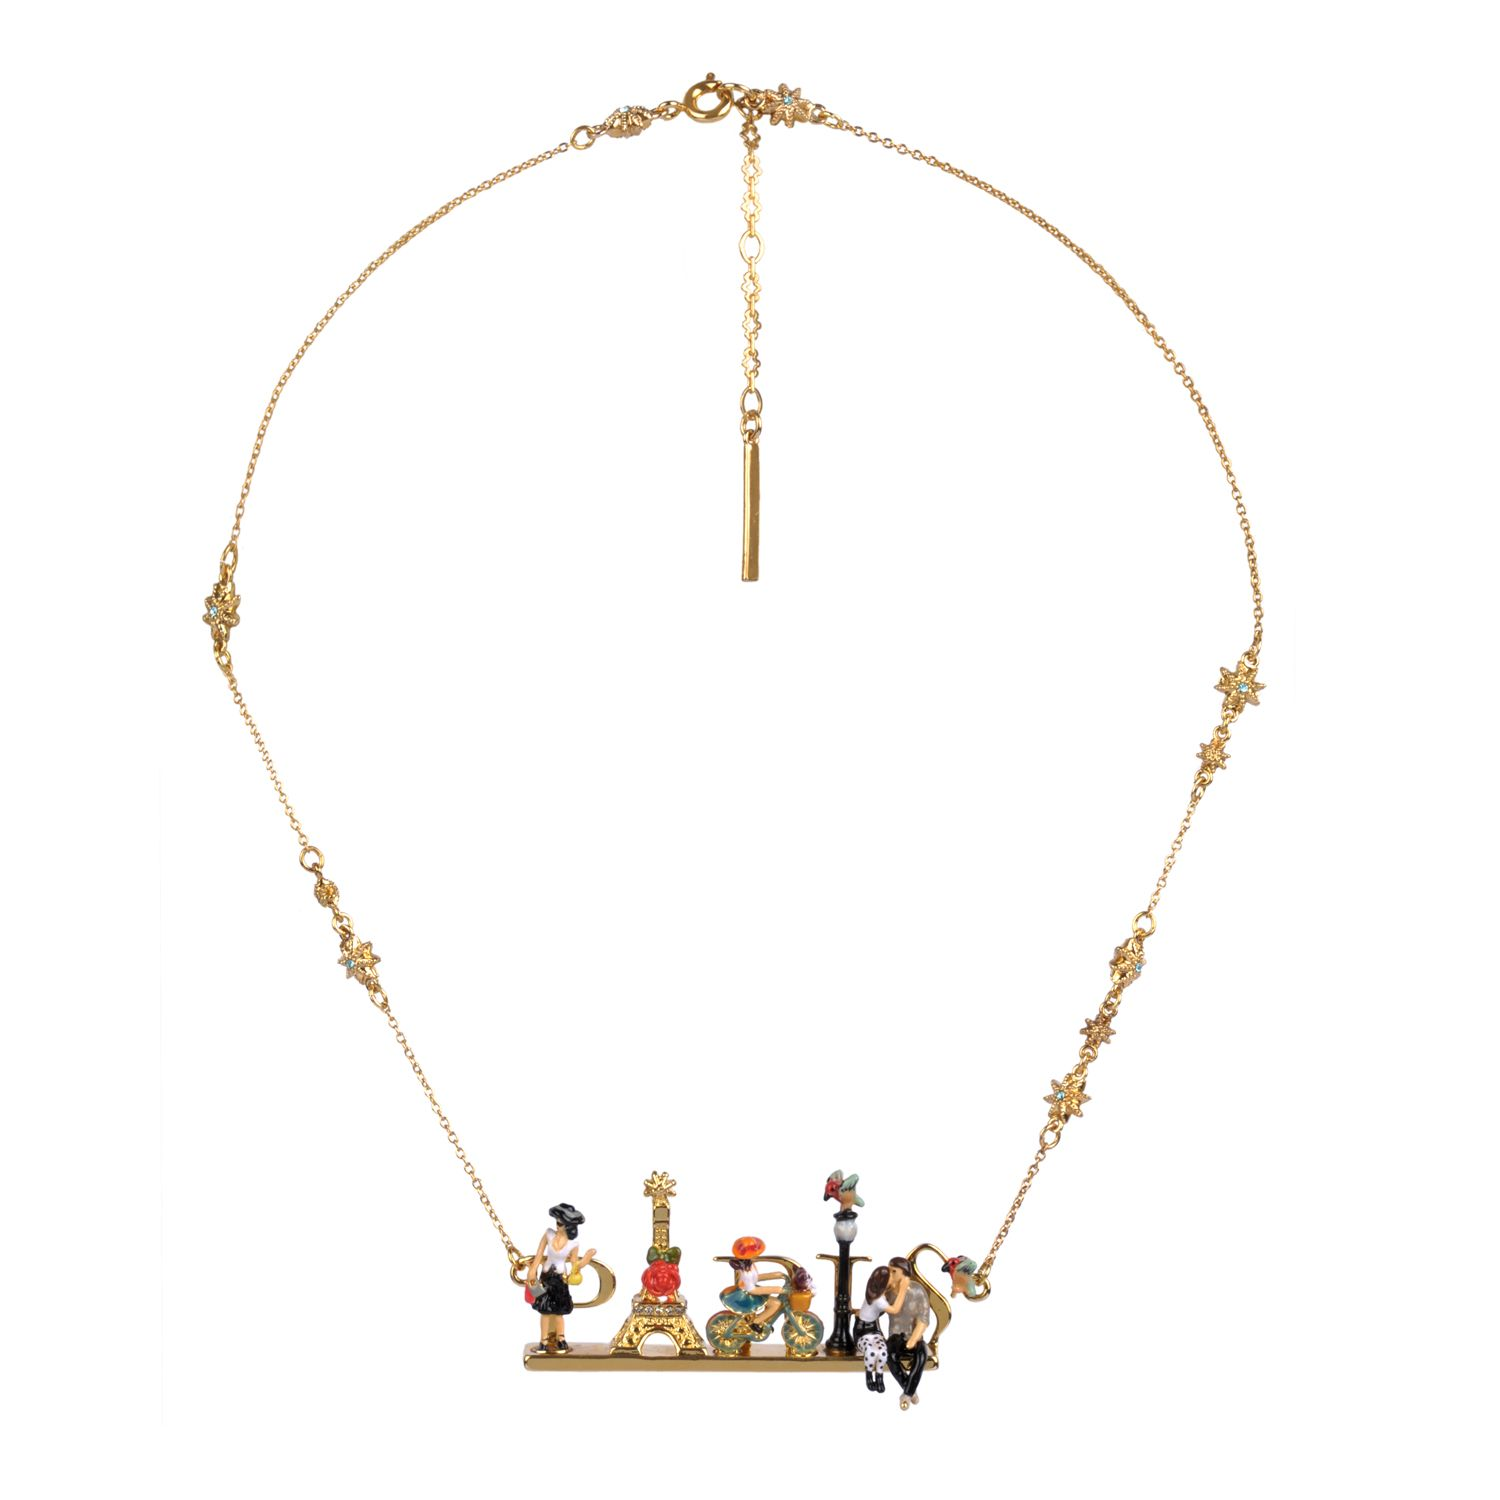 Paris mon amour necklace